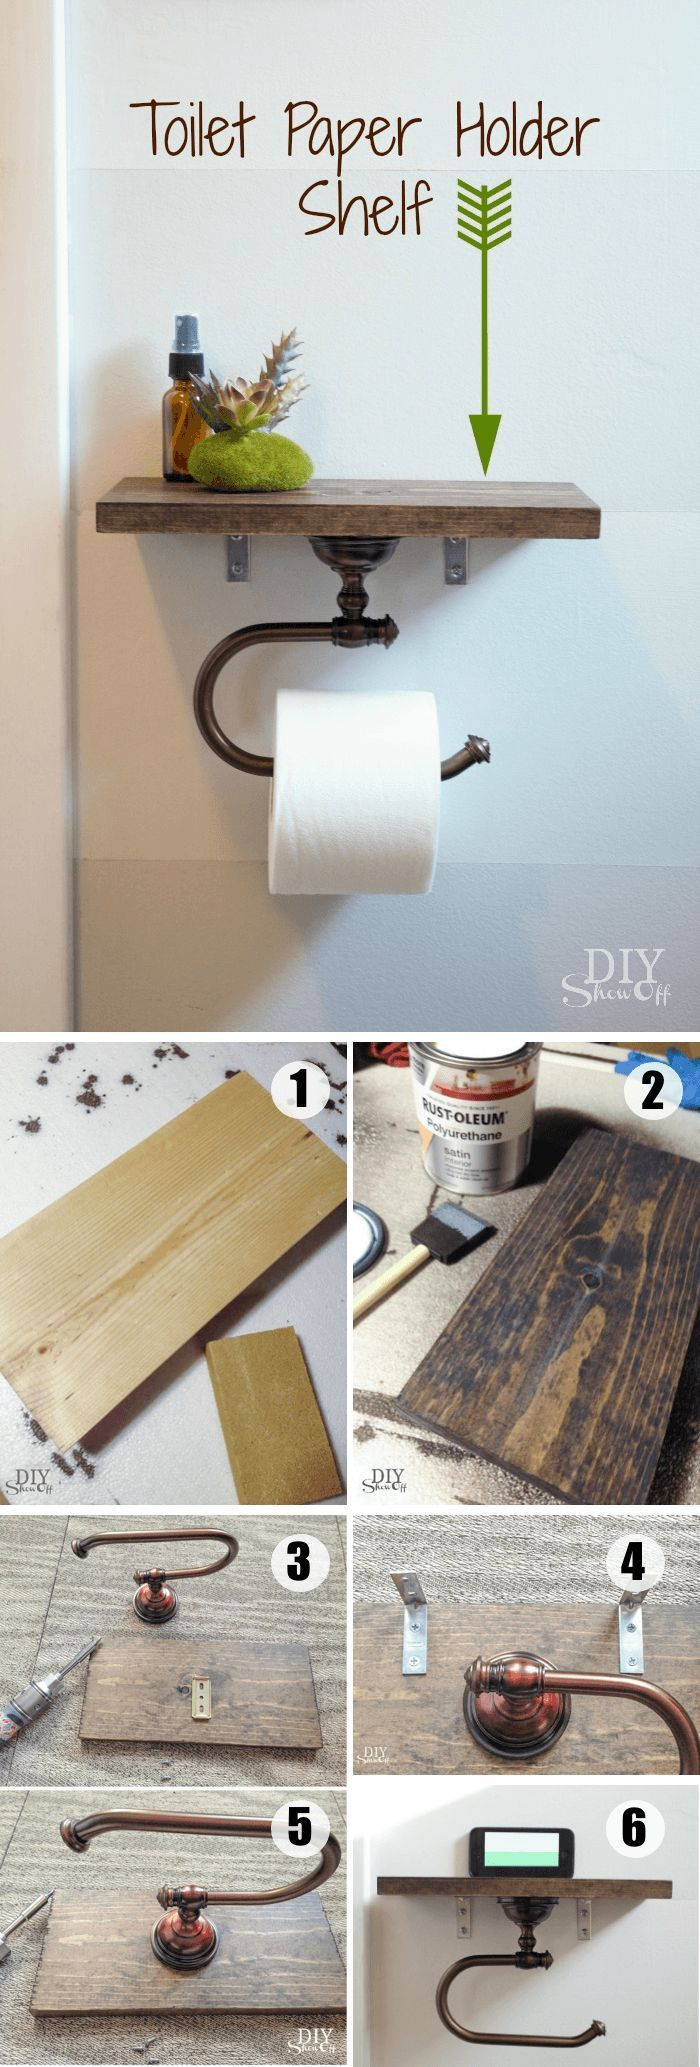 best 10 bathroom storage diy ideas on pinterest diy bathroom 15 totally unusual diy toilet paper holders rustic bathroom decorbathroom